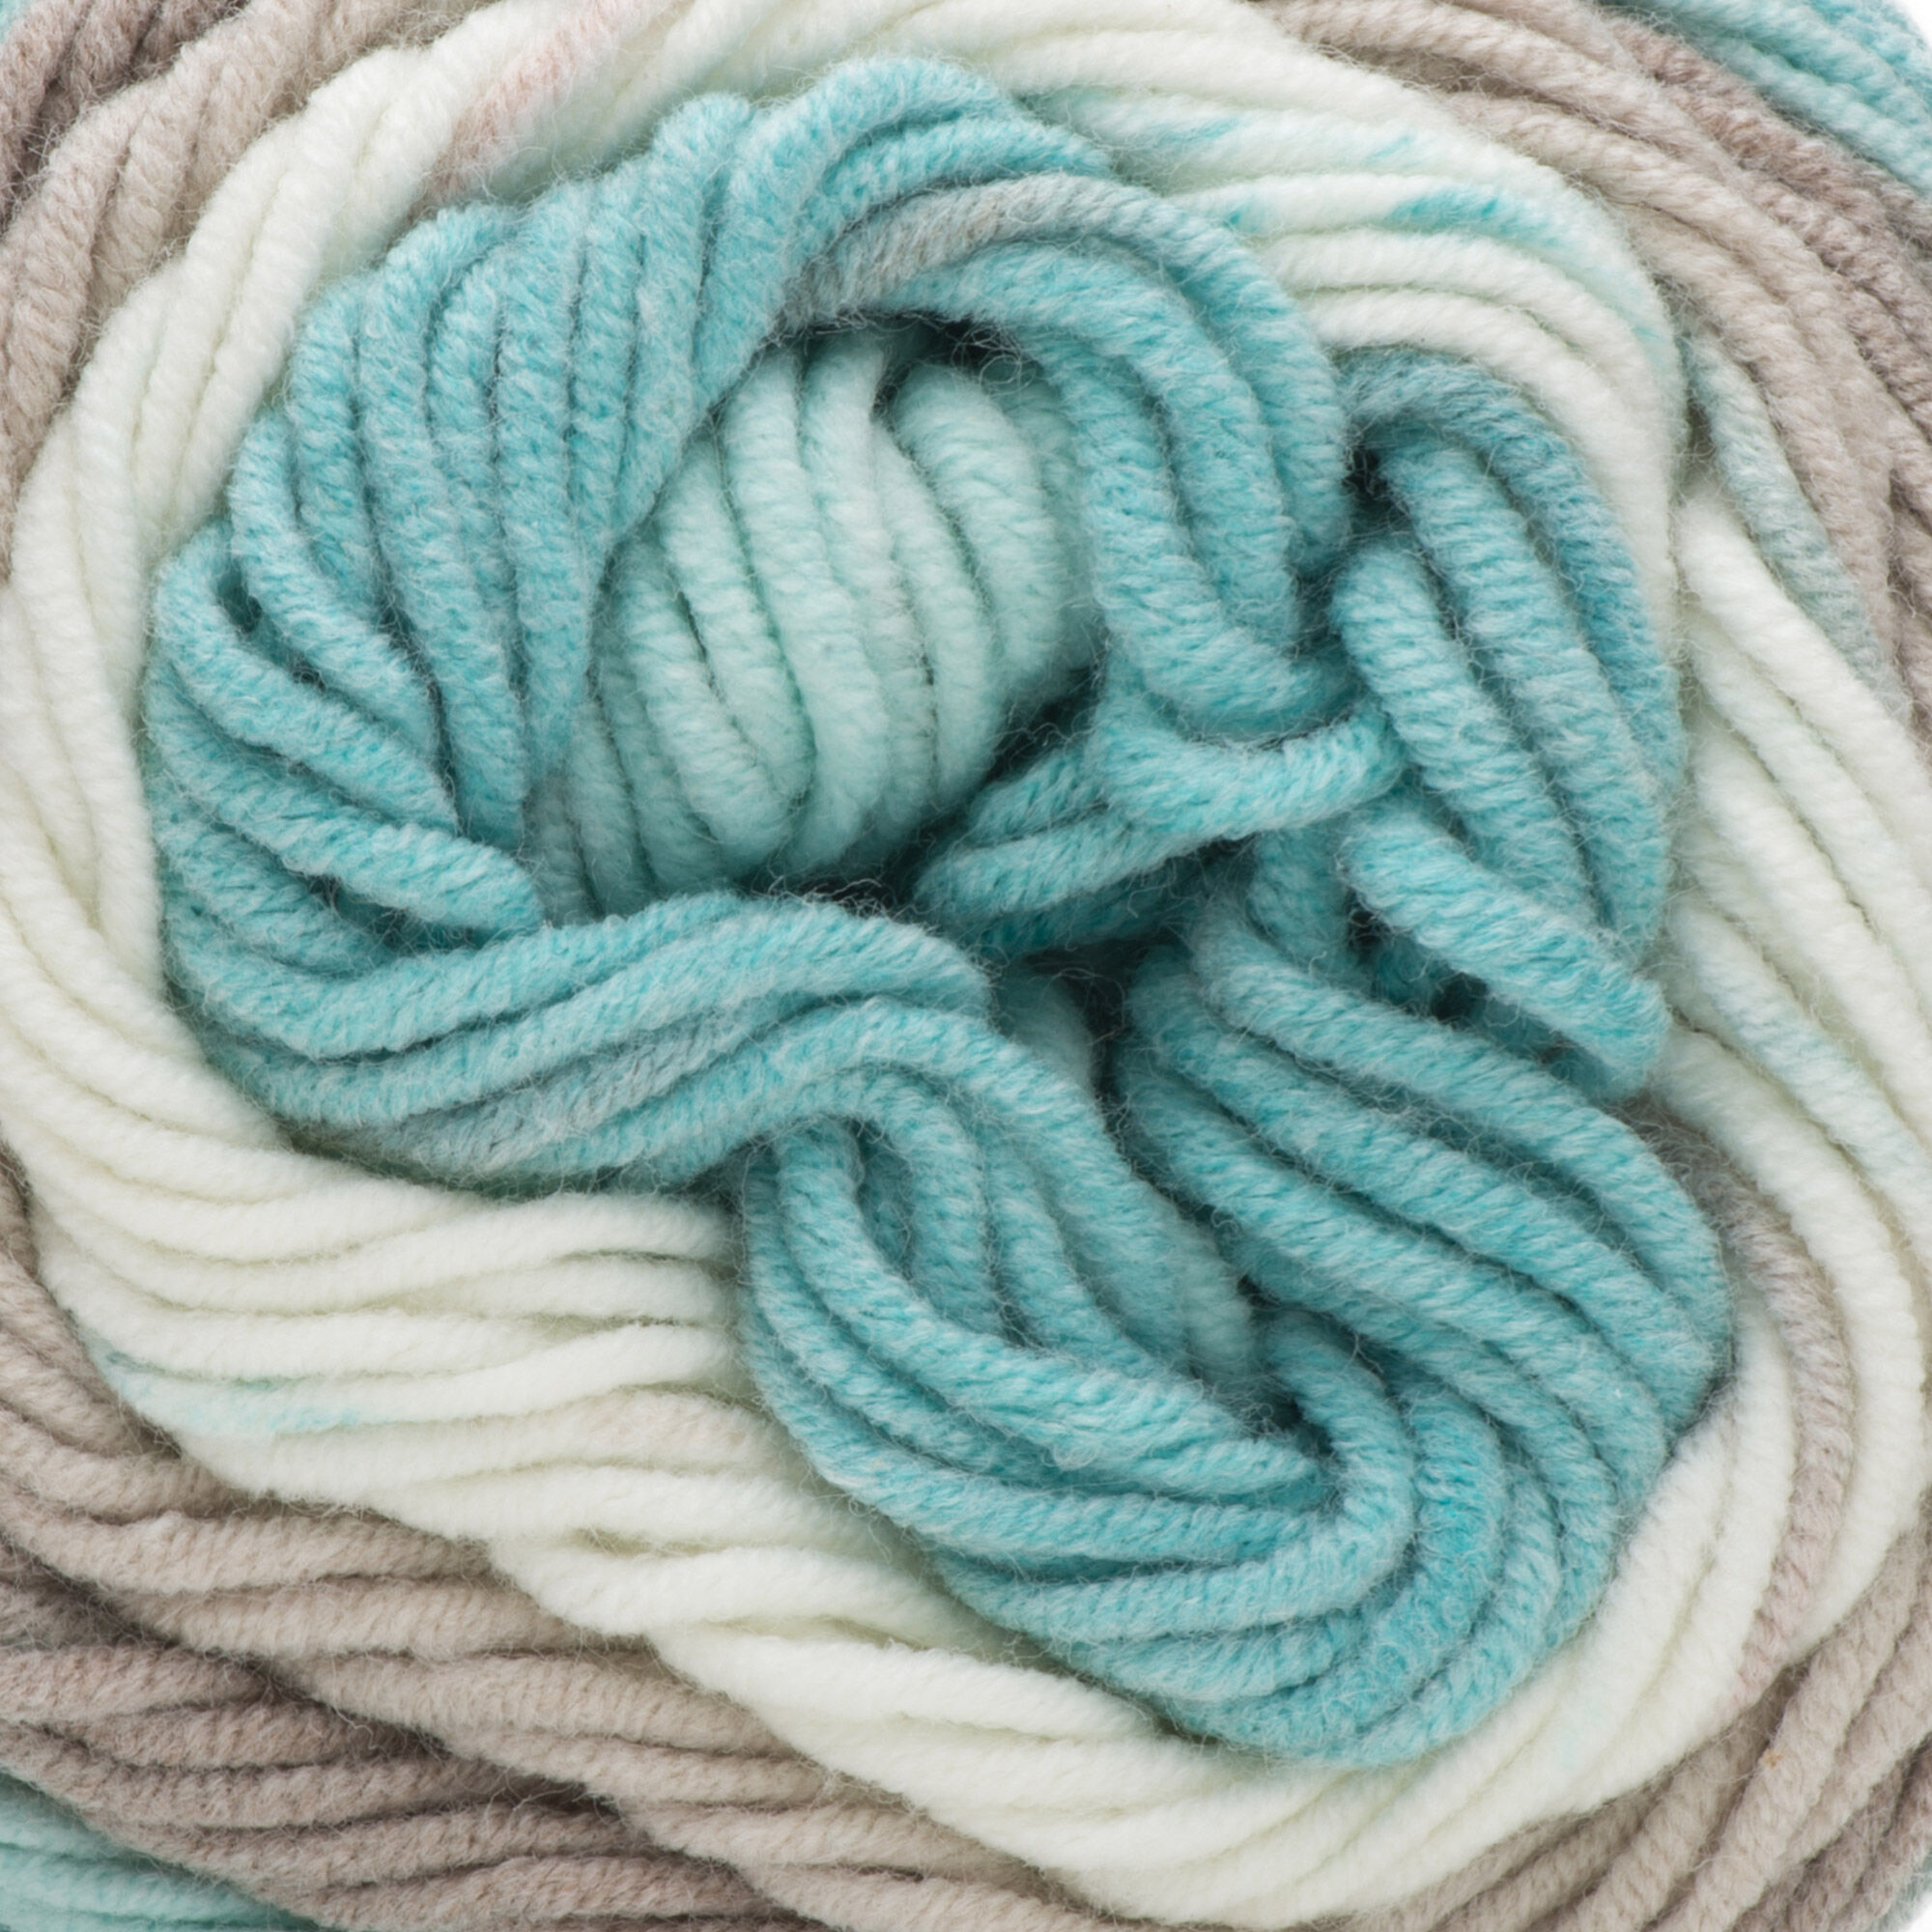 Caron Cotton Cakes Yarn, Beach Glass